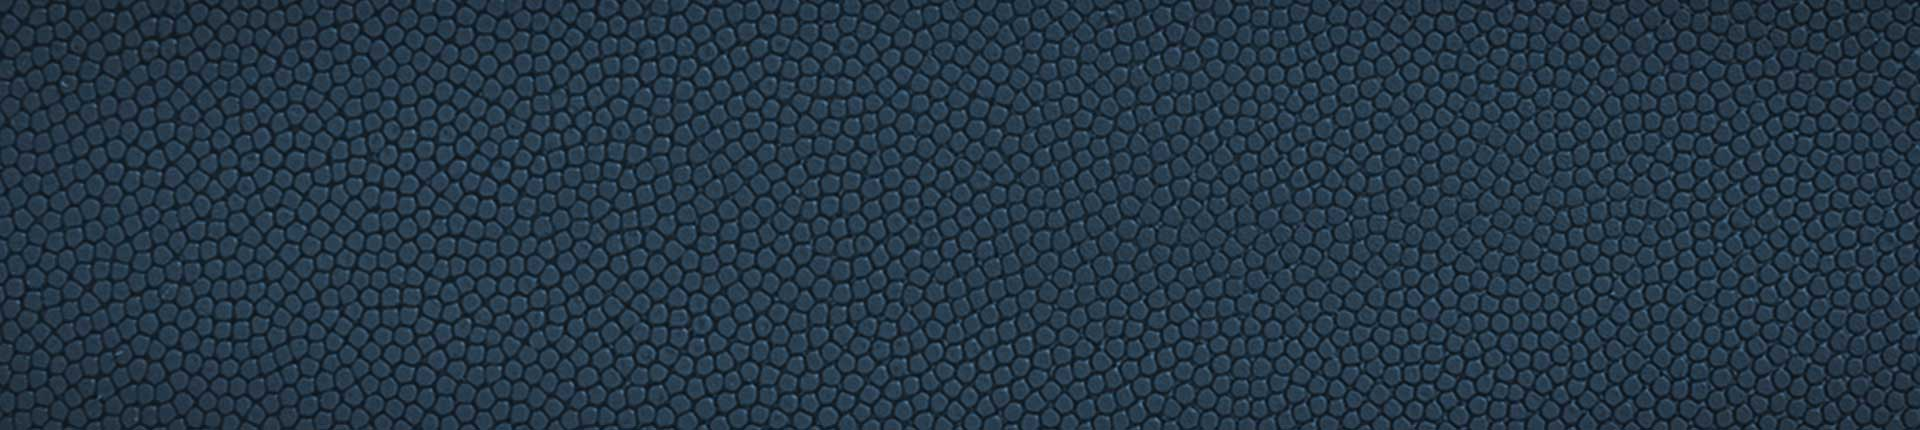 Closeup image of navy blue Wilson baseball glove leather